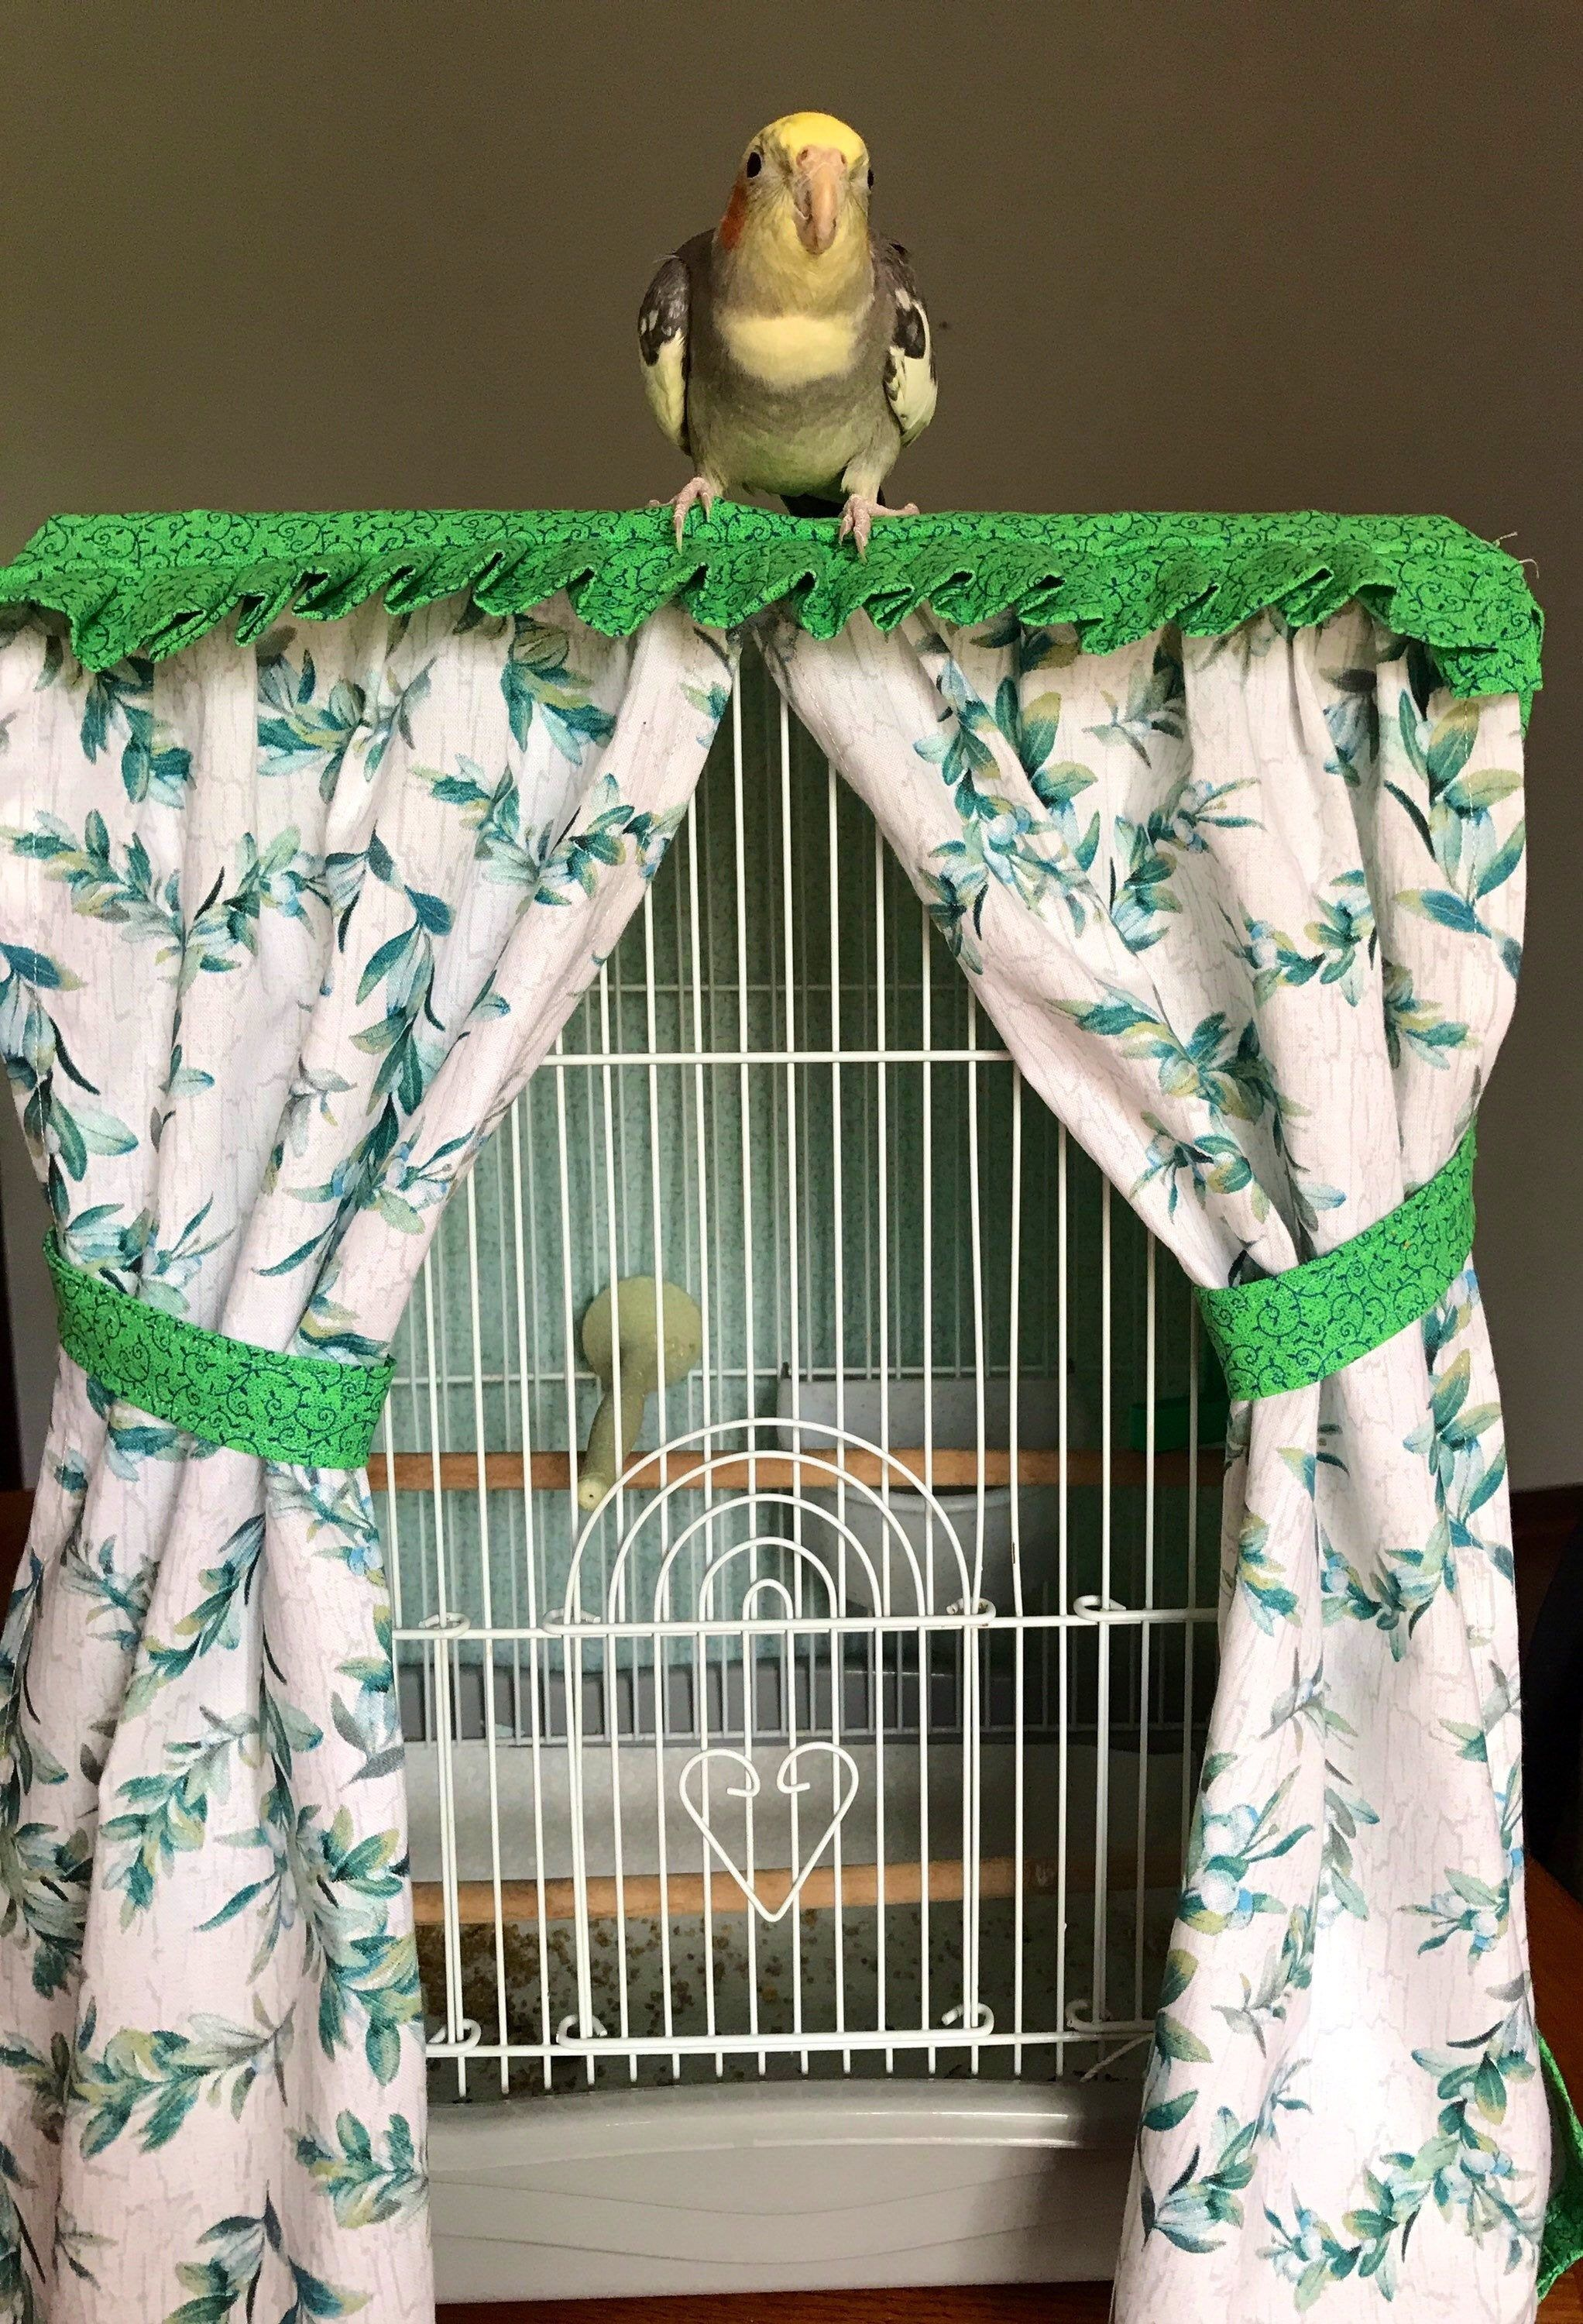 Bird Cage Cover Etsy In 2020 Bird Cage Covers Small Bird Cage Bird Cage